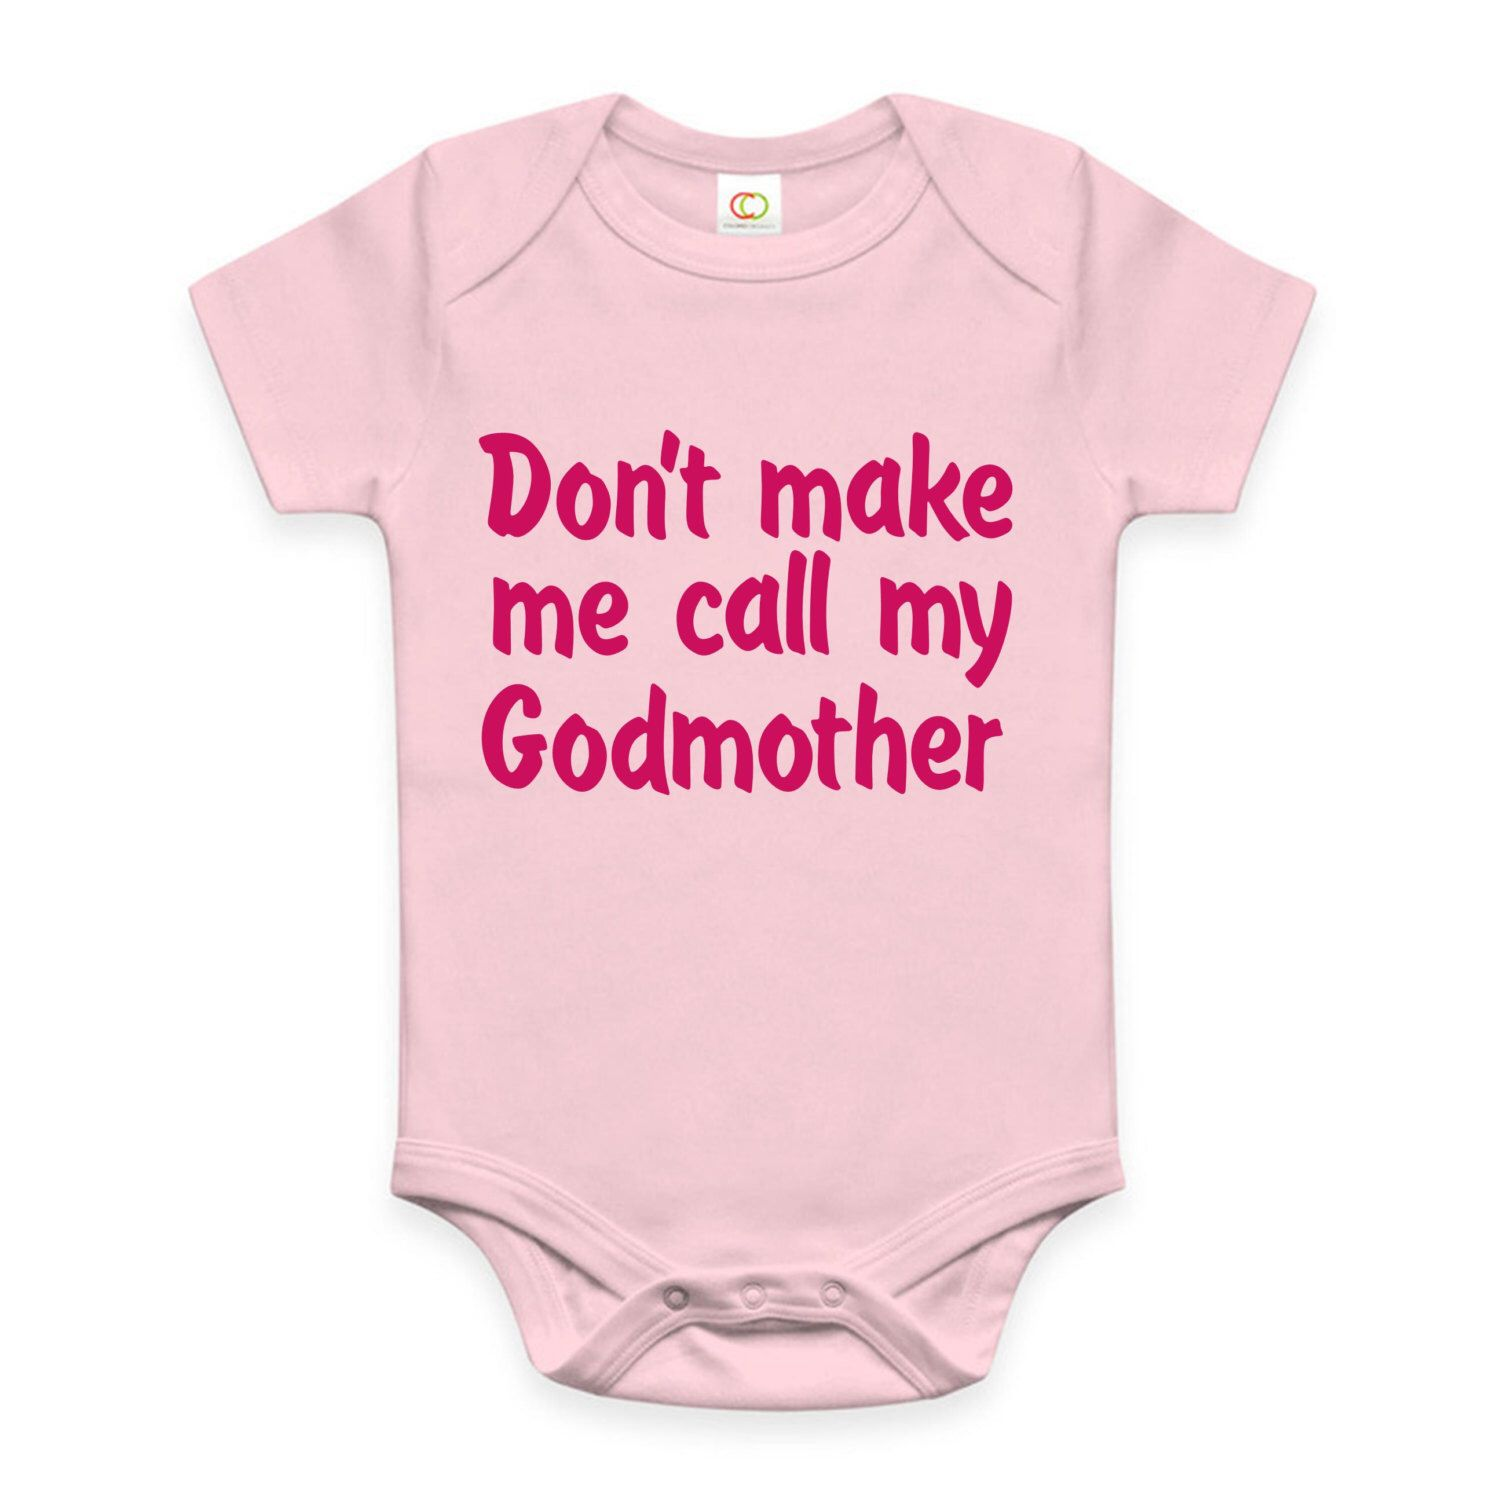 690f1b250 Don't make me call my Godmother or Godfather funny baby shirt bodysuit  Godson baby